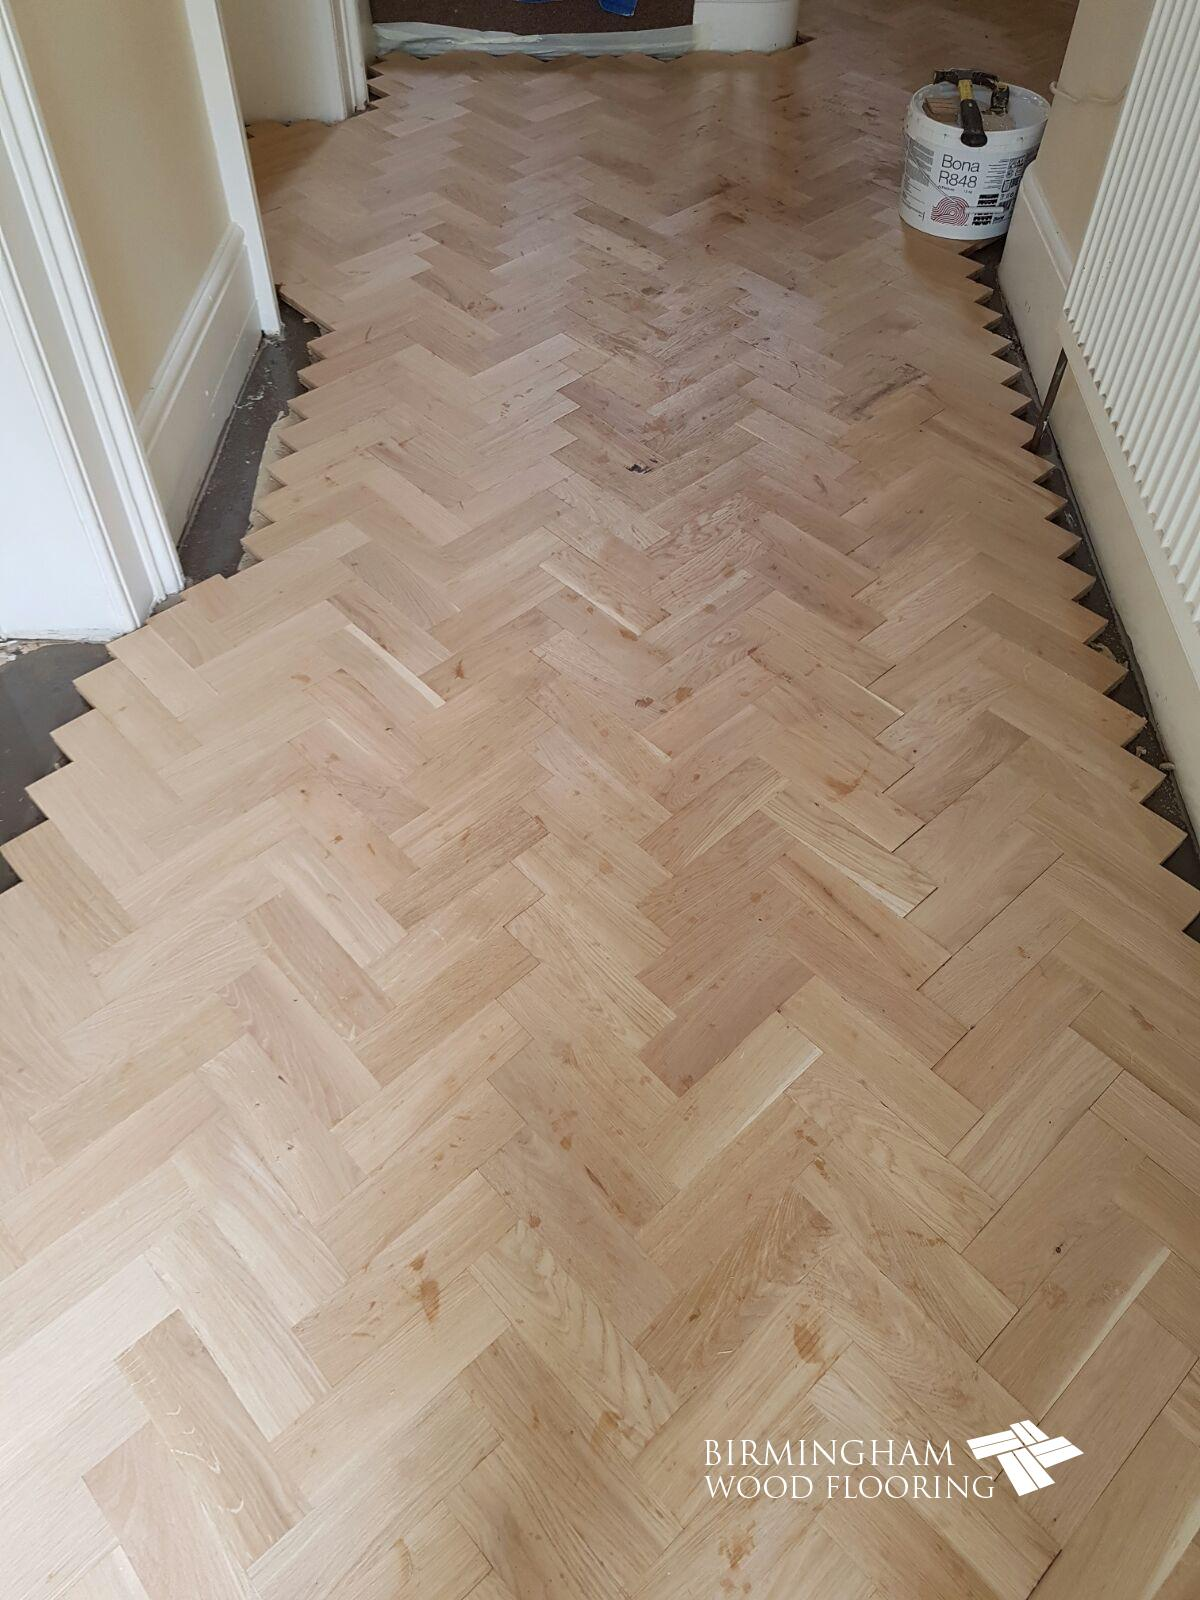 Parquet-floor-ready-to-have-the-Wenge-Feature-strip-and-border-installed-Edgbaston-Birmingham-3